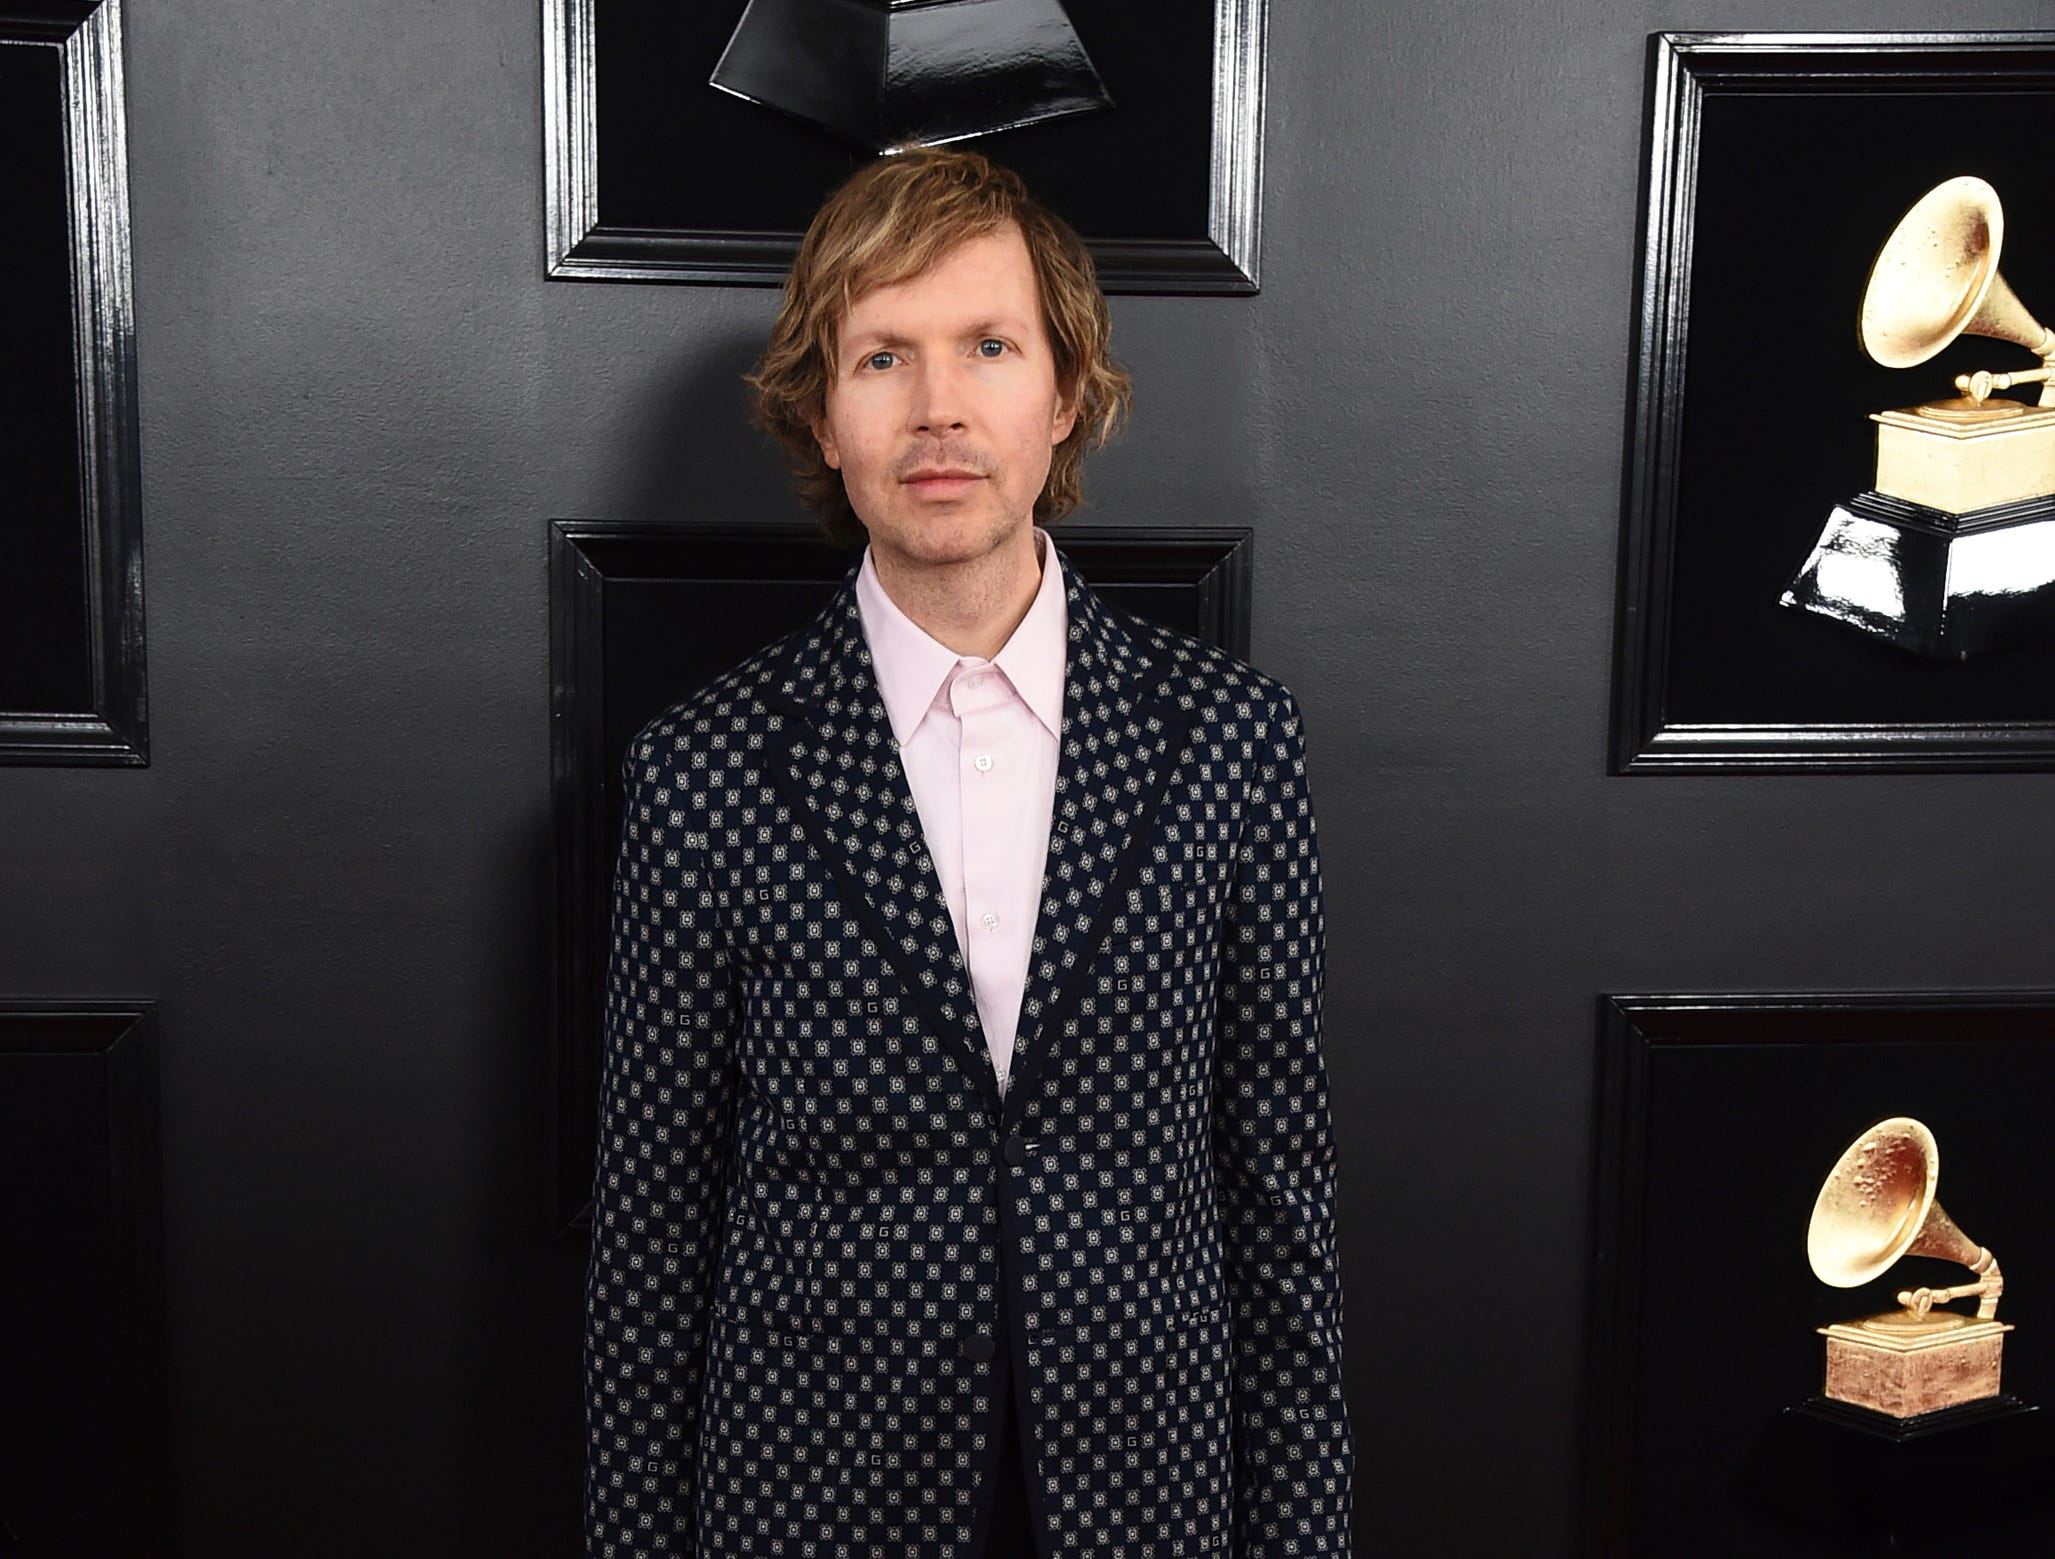 Beck arrives at the 61st annual Grammy Awards.